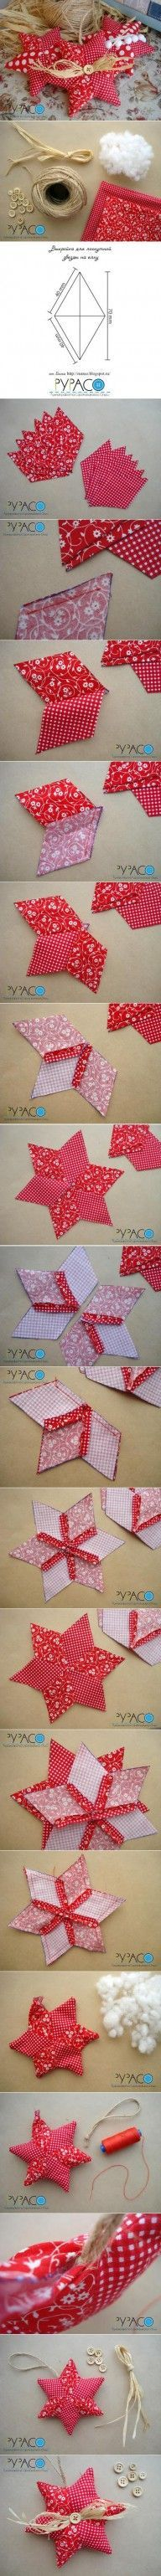 DIY Little Fabric Star DIY Projects